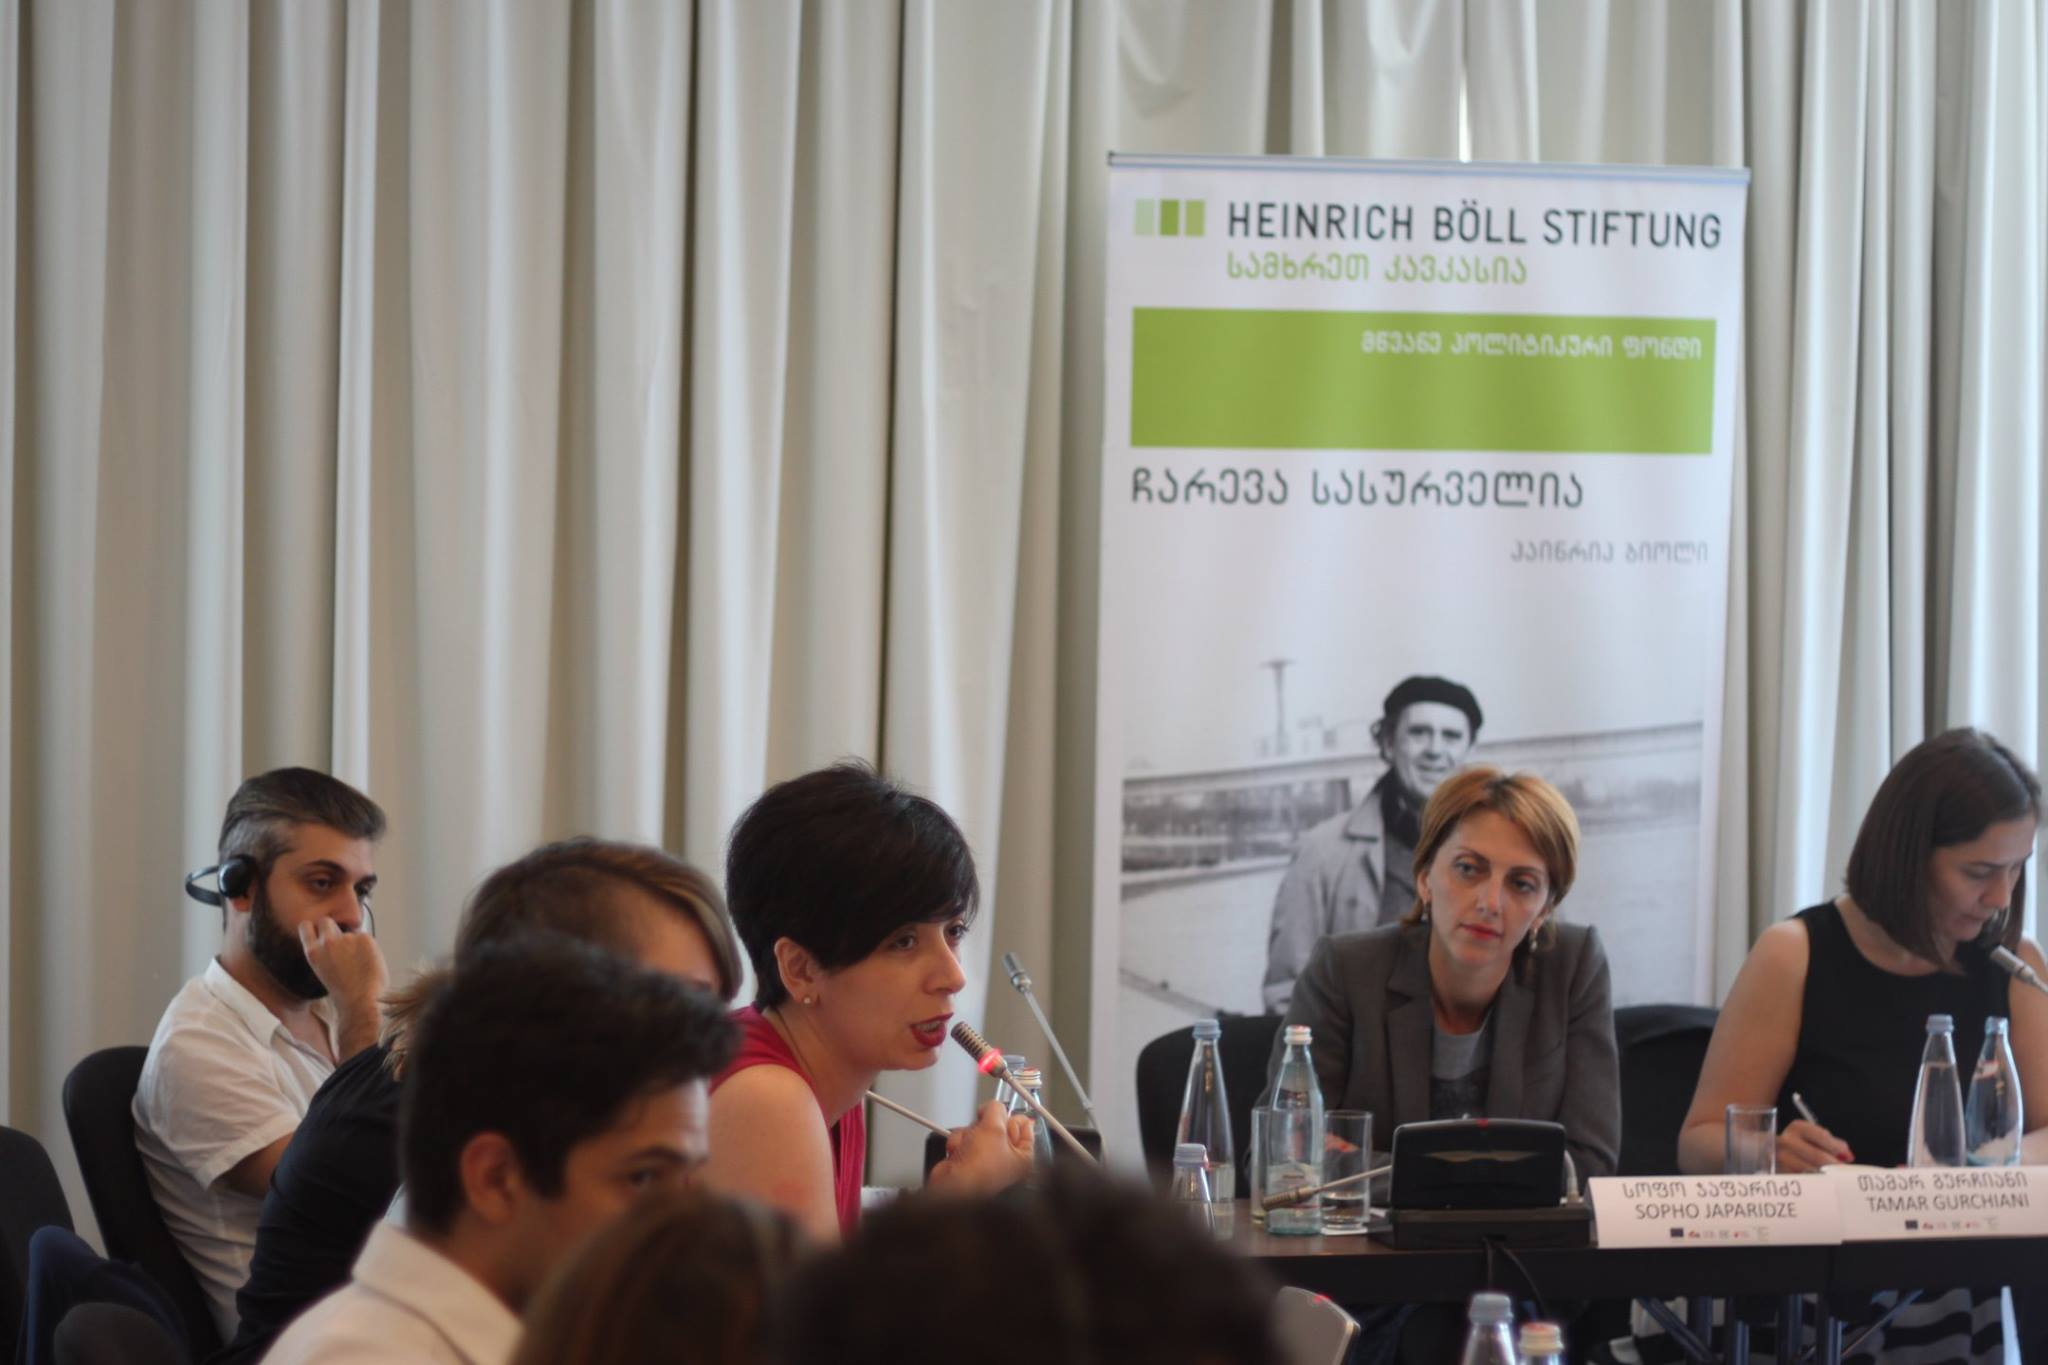 photo courtesy: Heinrich Boll Stiftung South Caucasus